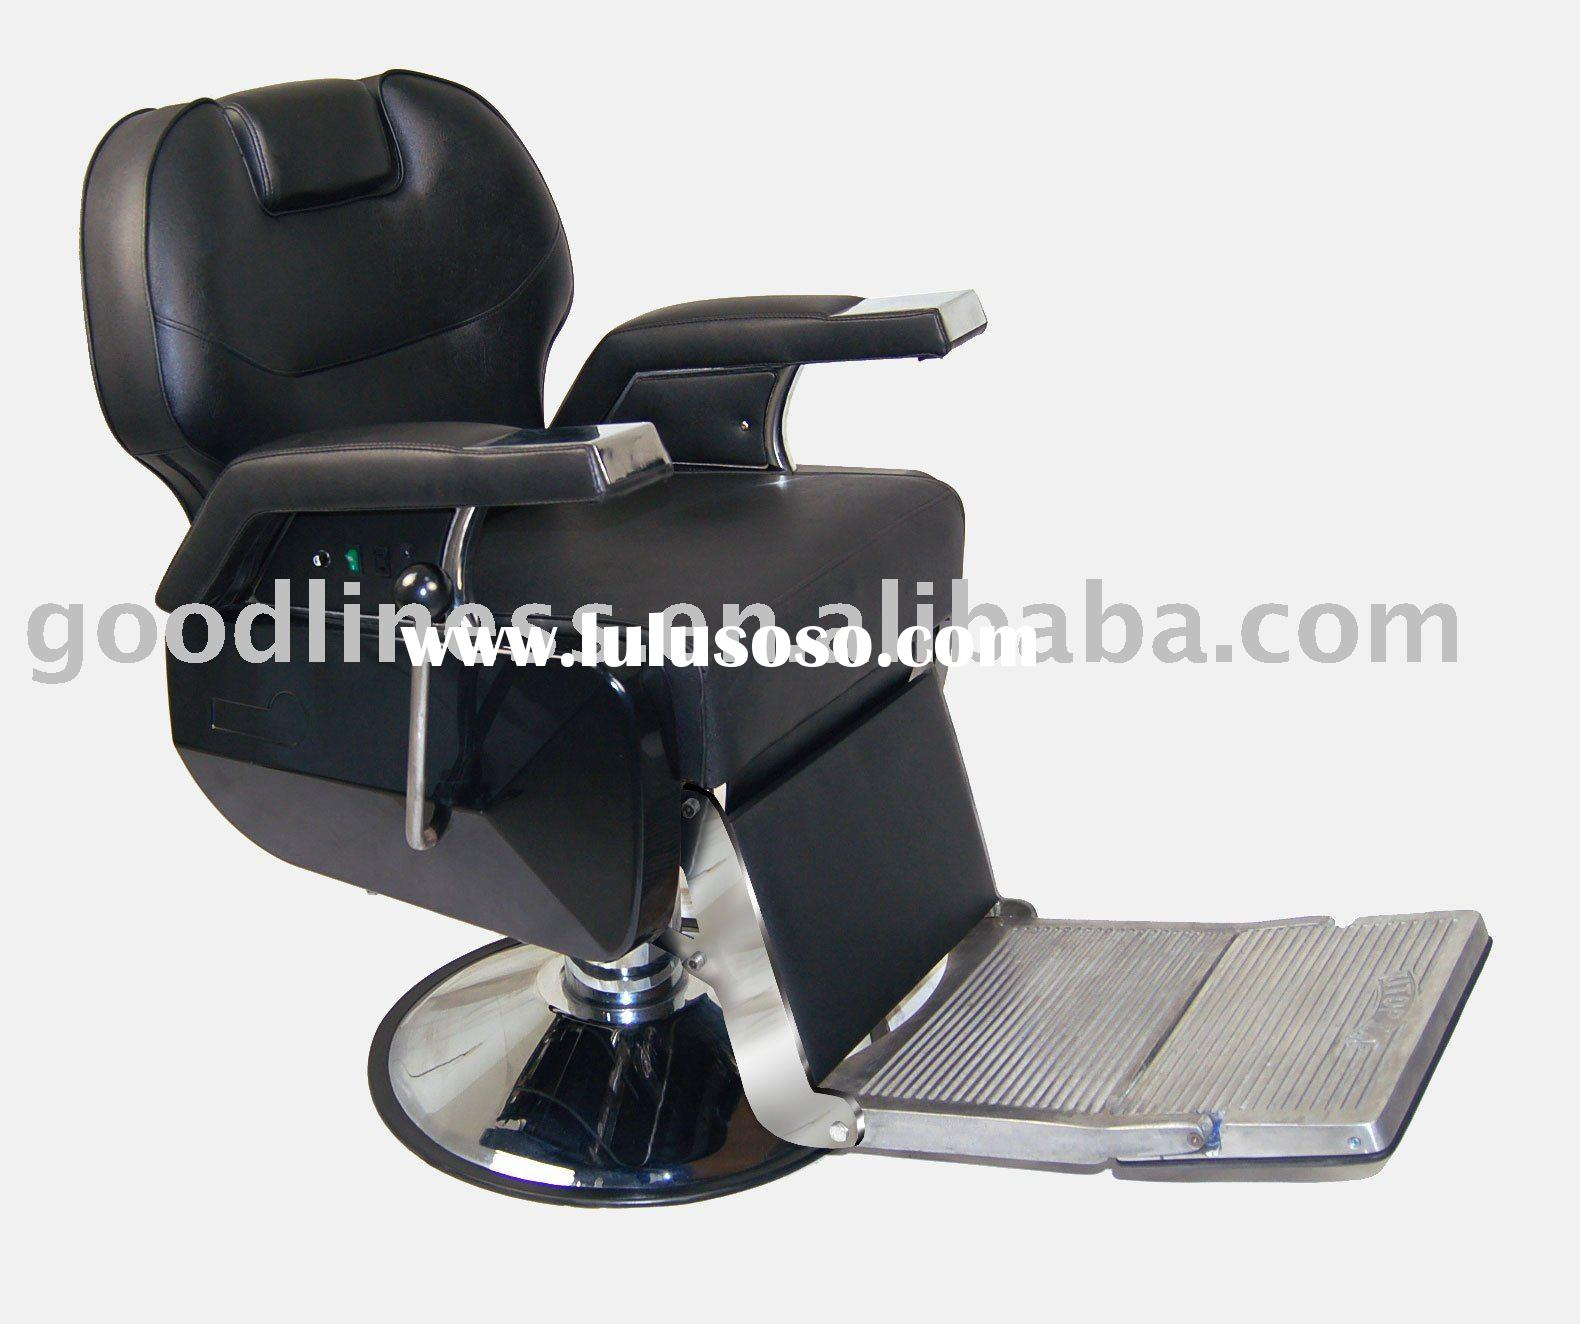 Goodliness Barber Chair JY6090 (salon furniture & beauty equipment & hairdressing)